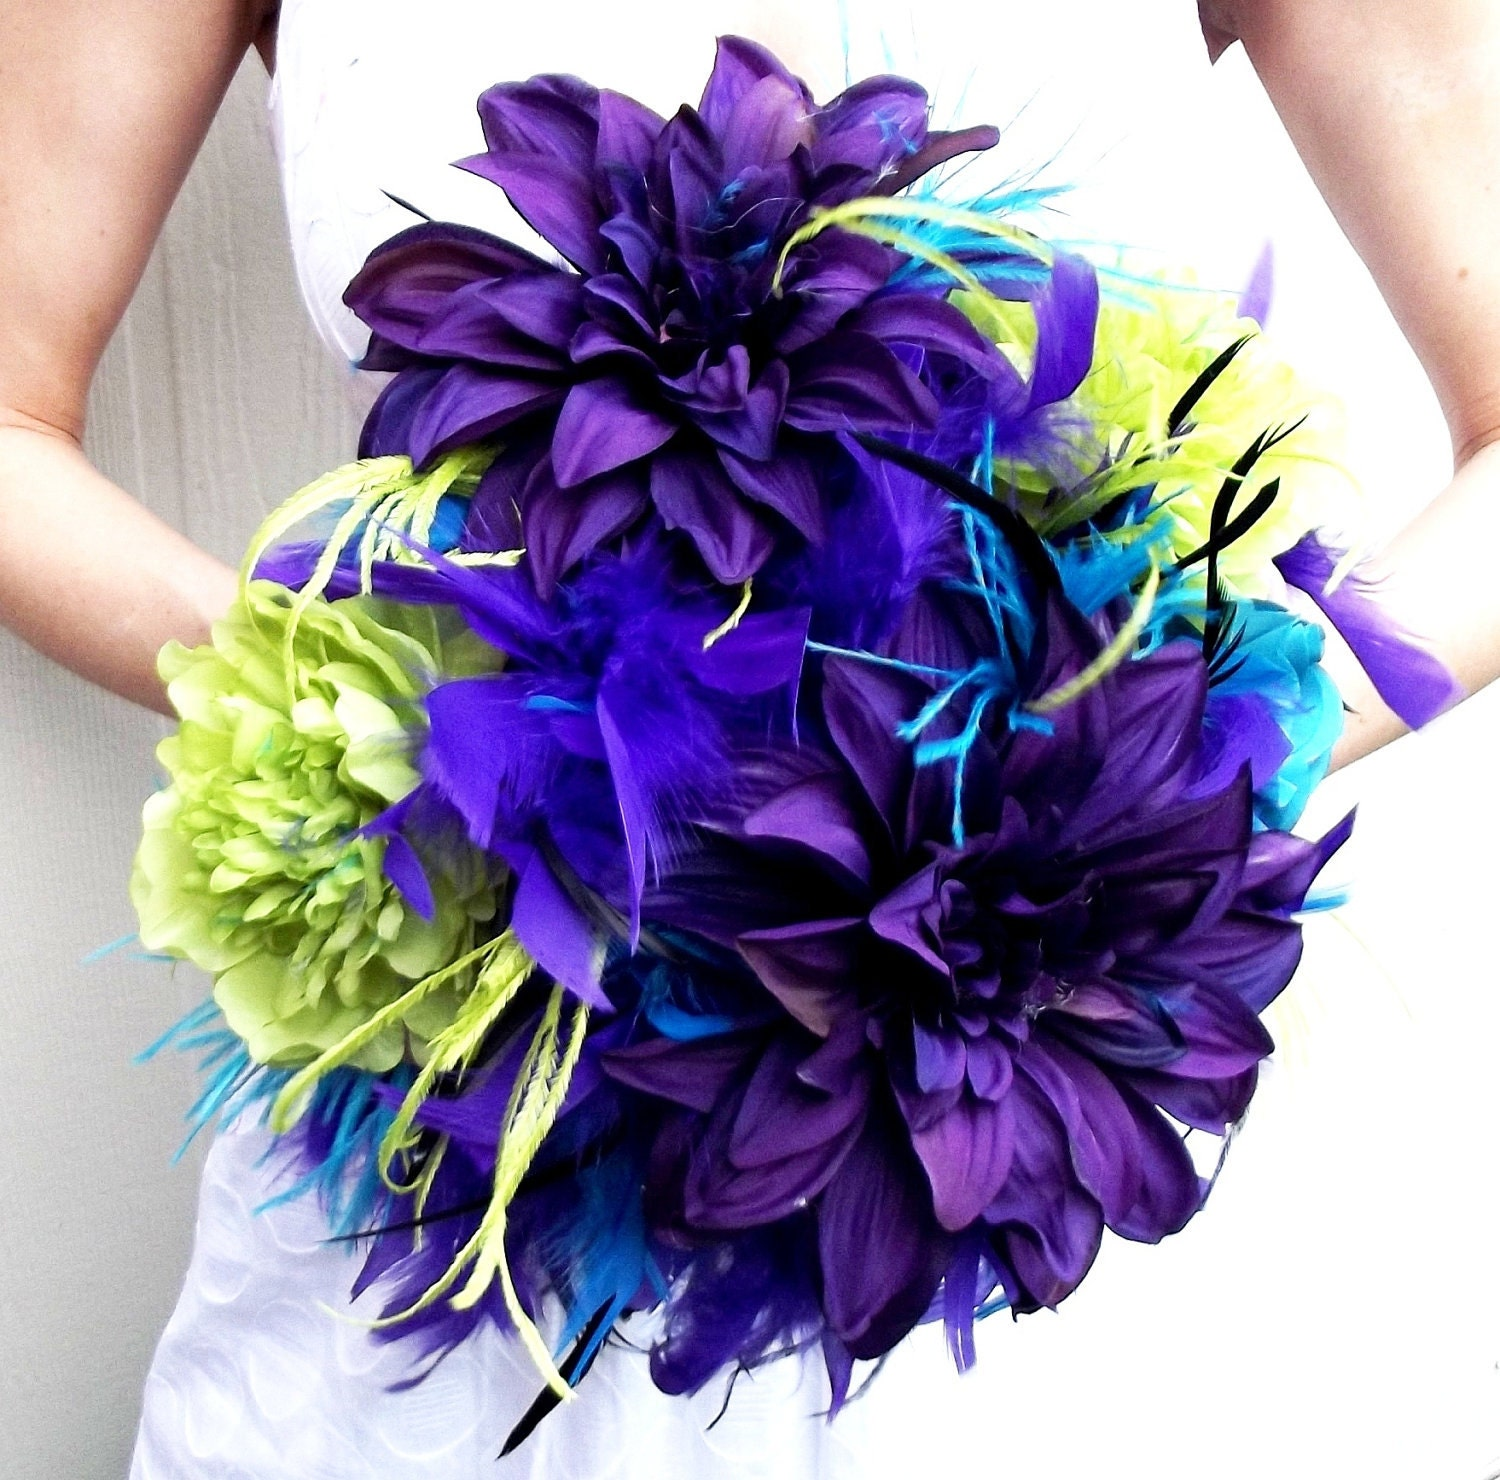 DRAMATIC Peacock Feathers & Flowers Bridal Bouquet Purple